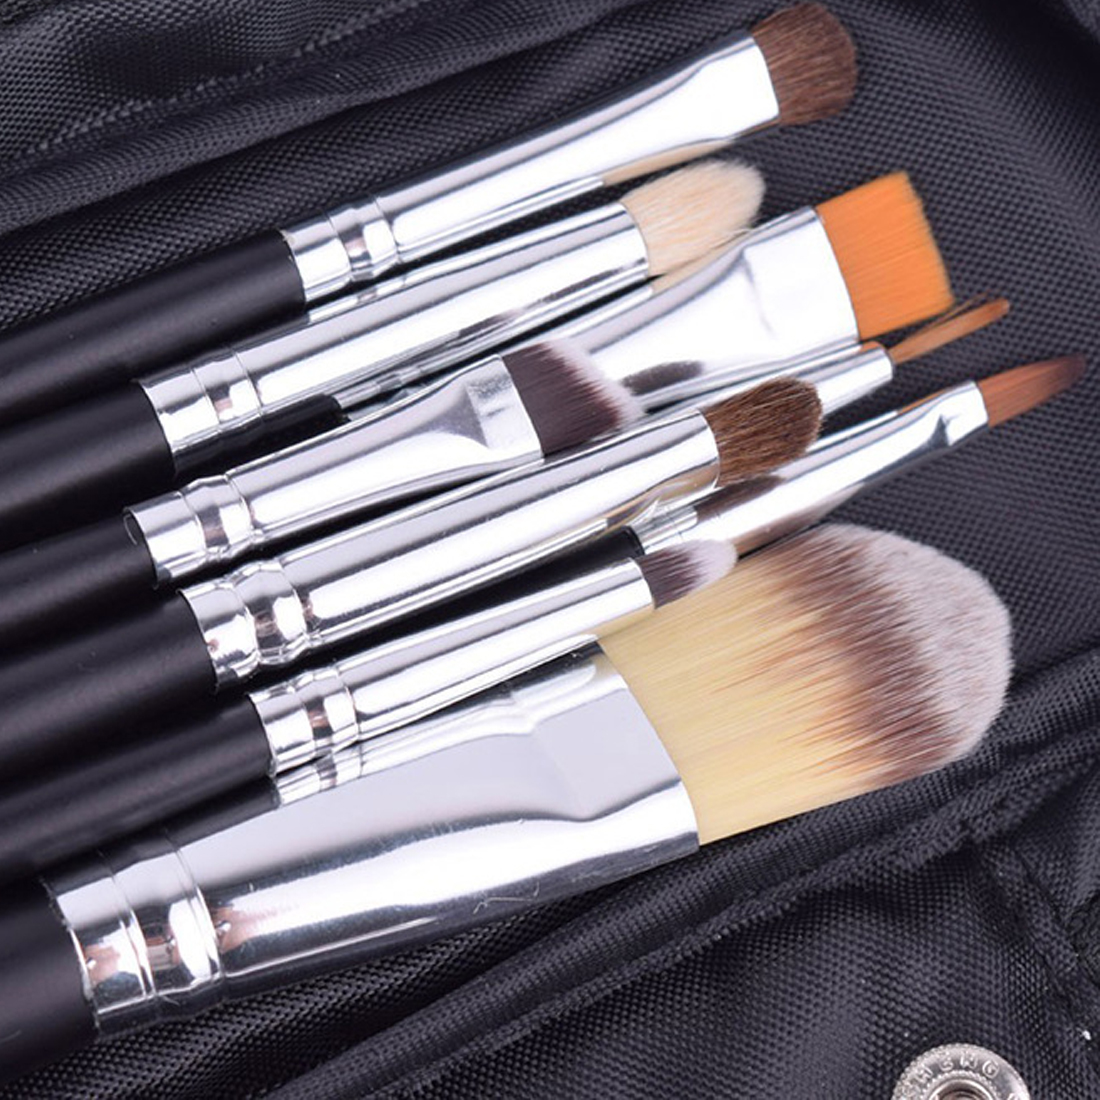 12pcs High Quality Make Up Brush Set Leather Case with Zipper Professional Cosmetic Beauty Makeup Brushes & Tools